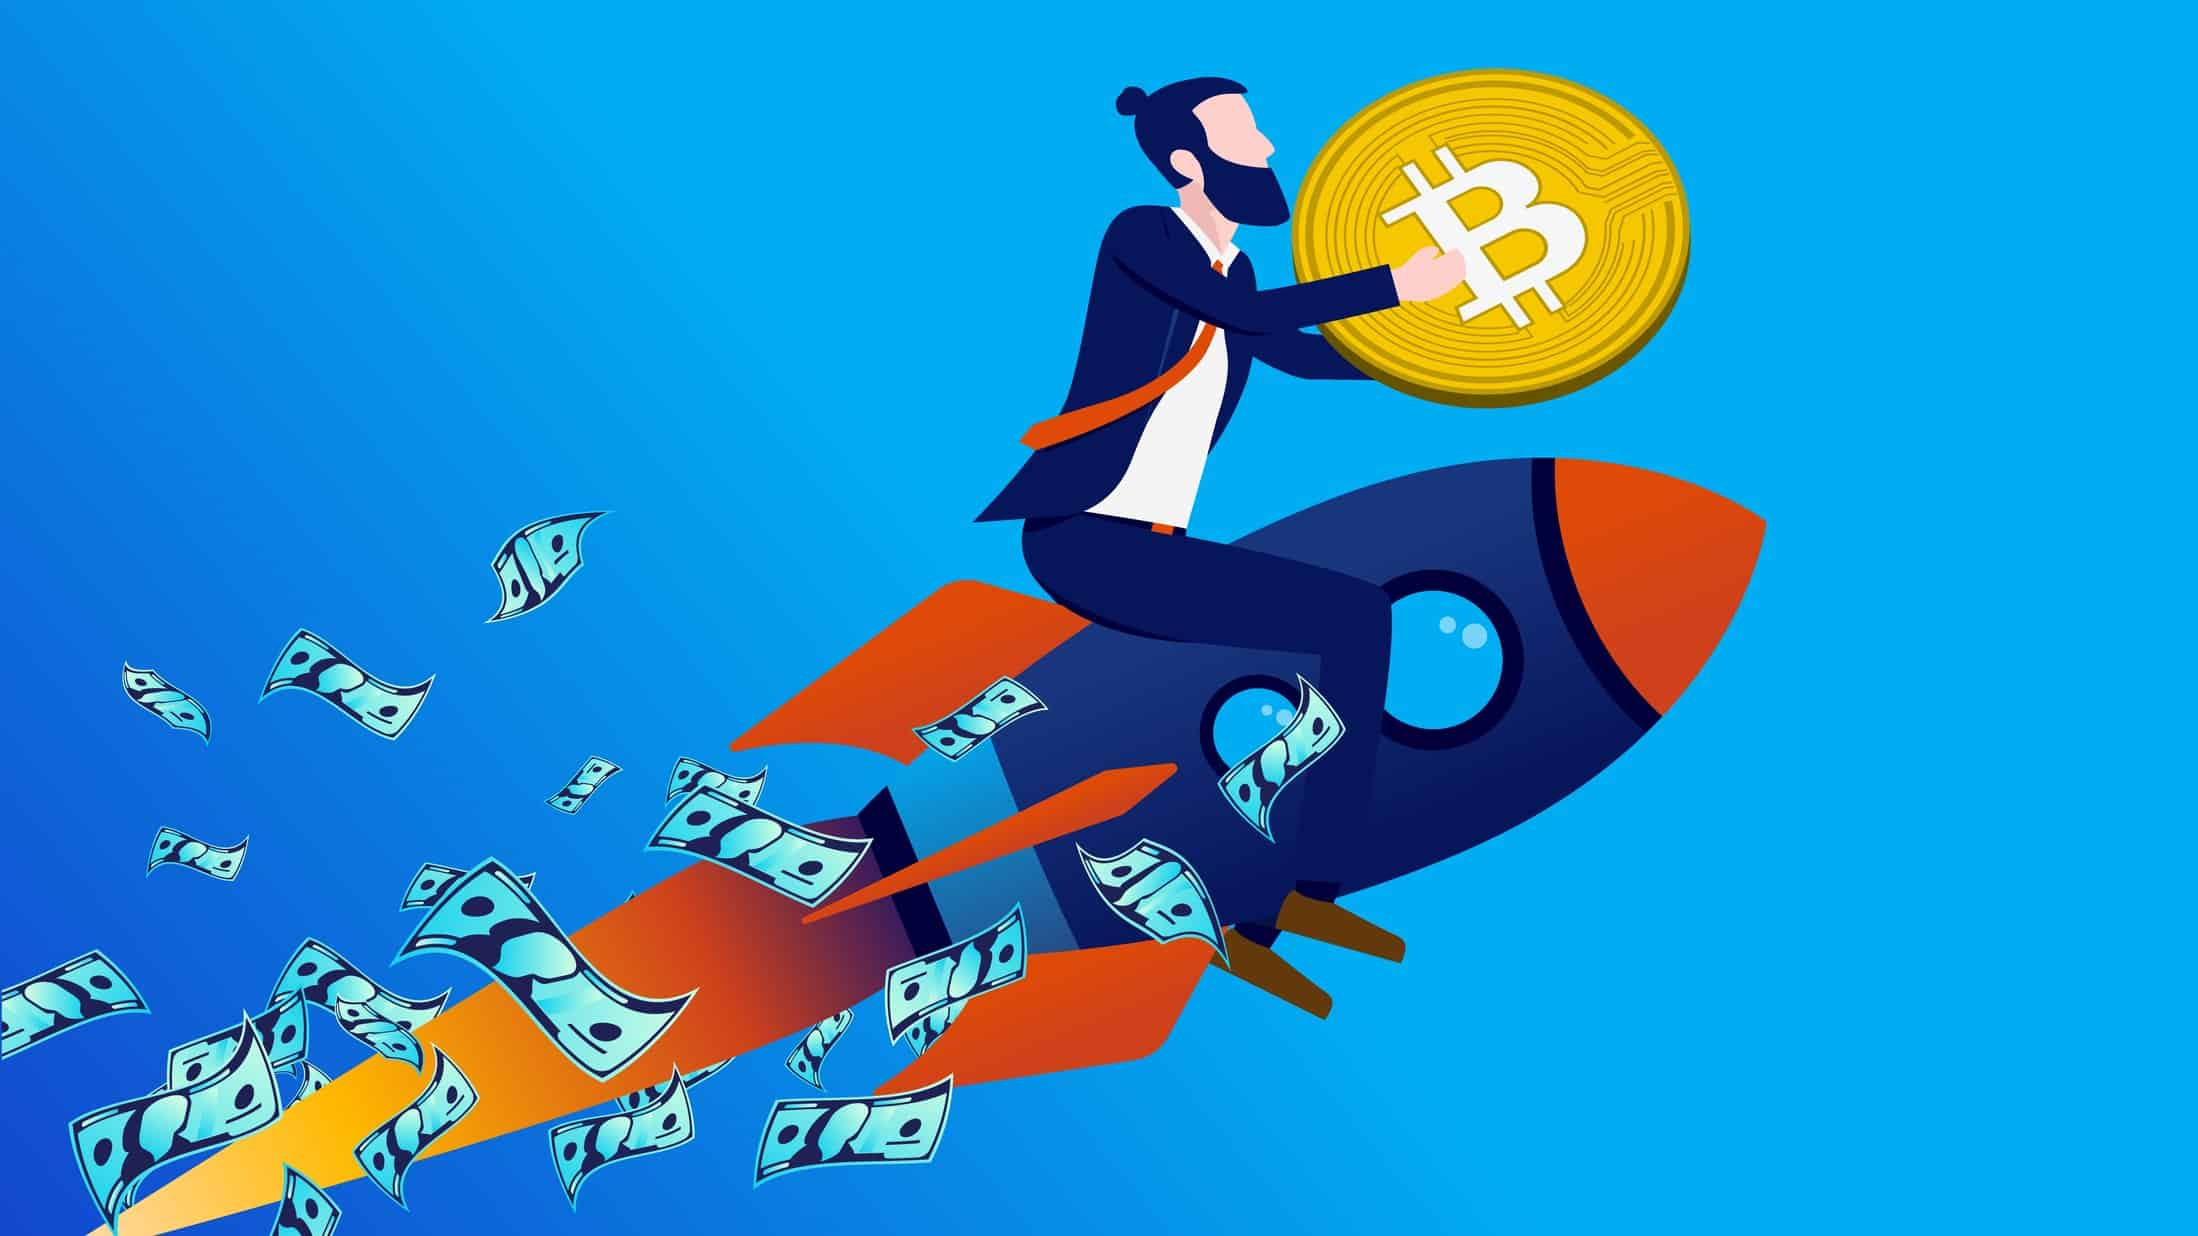 Graphic of man on rocket holding bitcoin rising